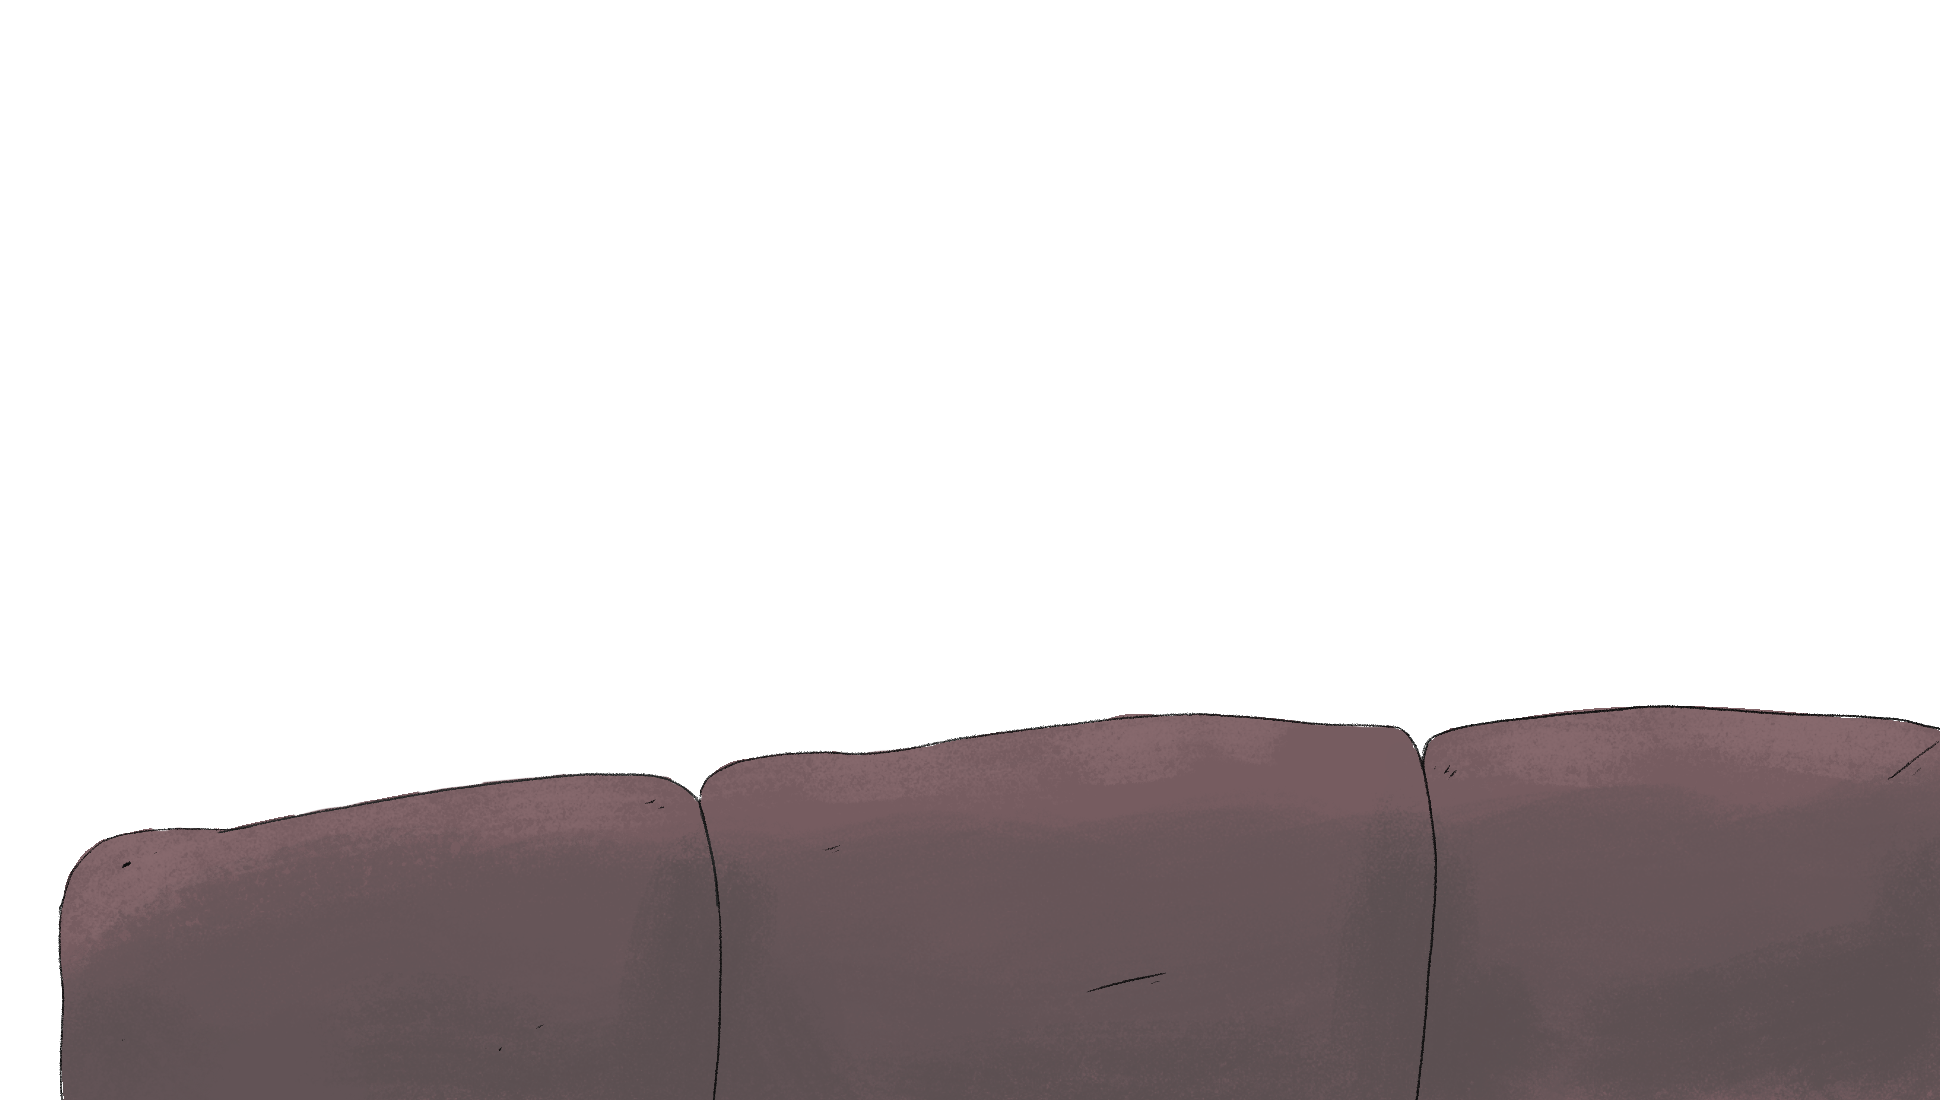 bkg_03_couch.png